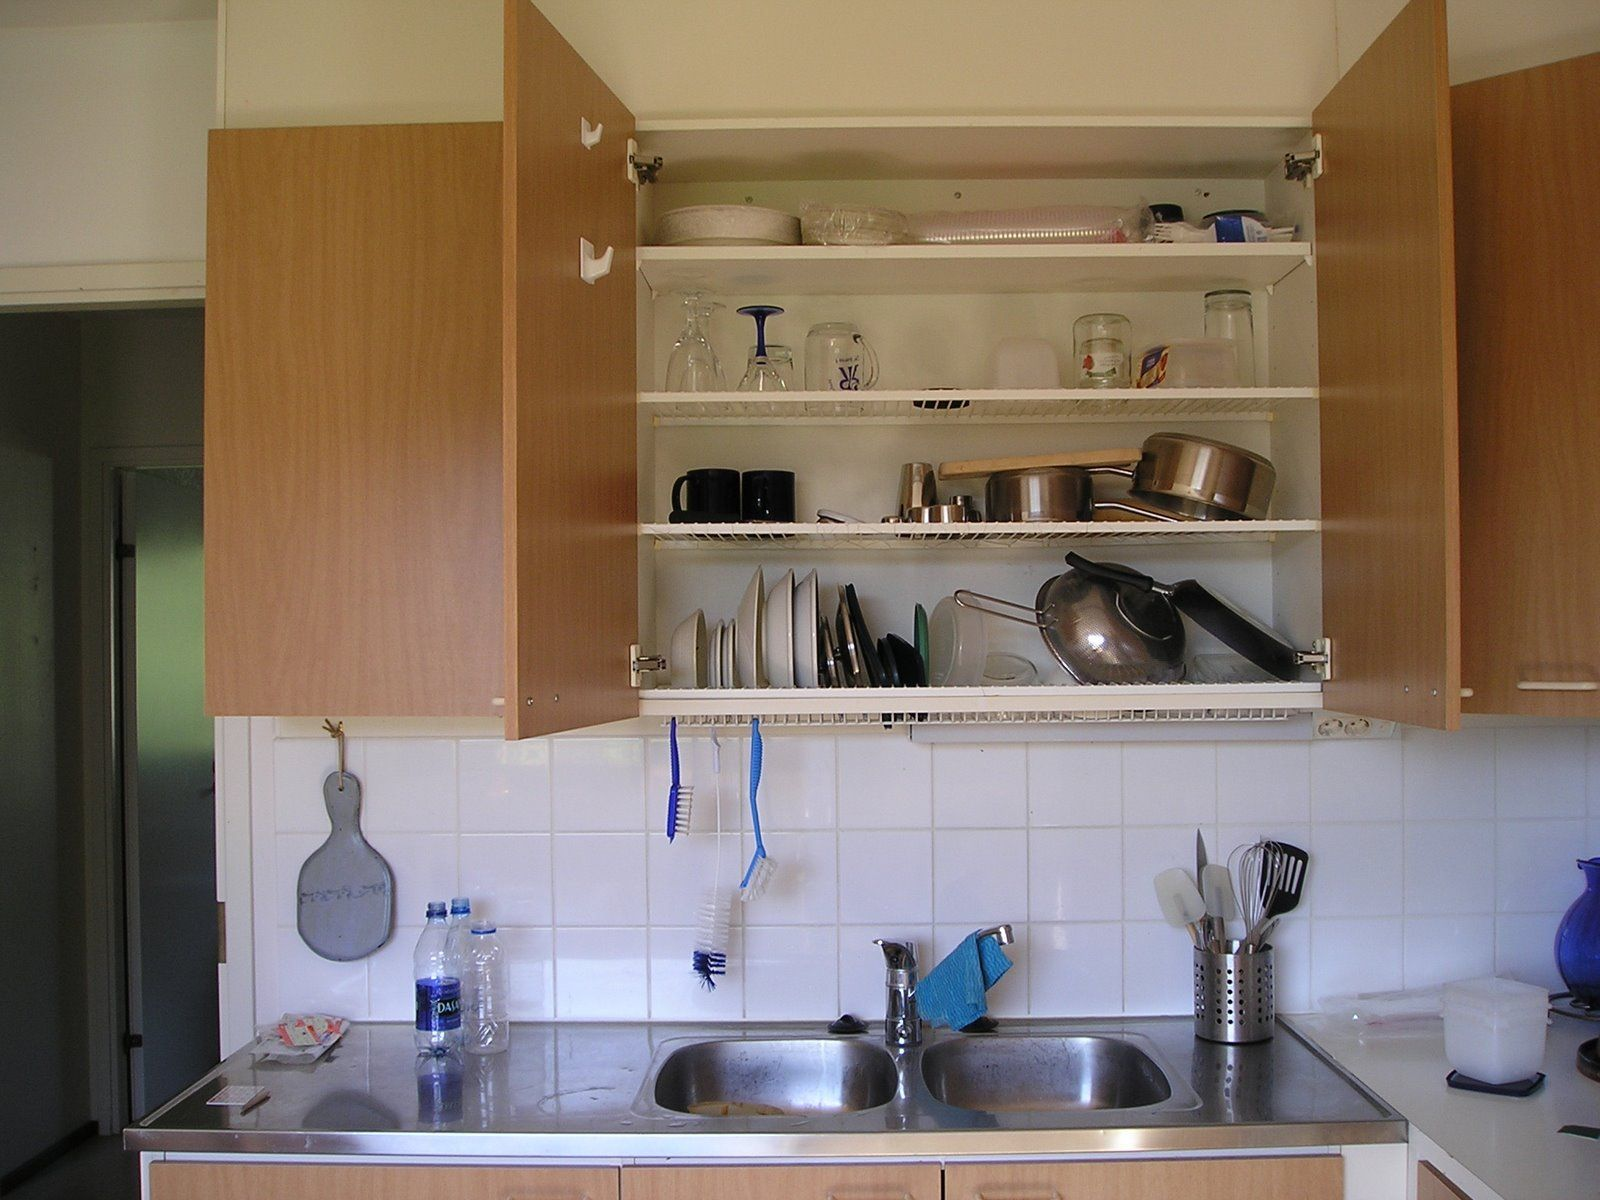 Finnish Concealed Dish Drying Cabinet, Or Astiankuivauskaappi. Better Than A Dish Rack.